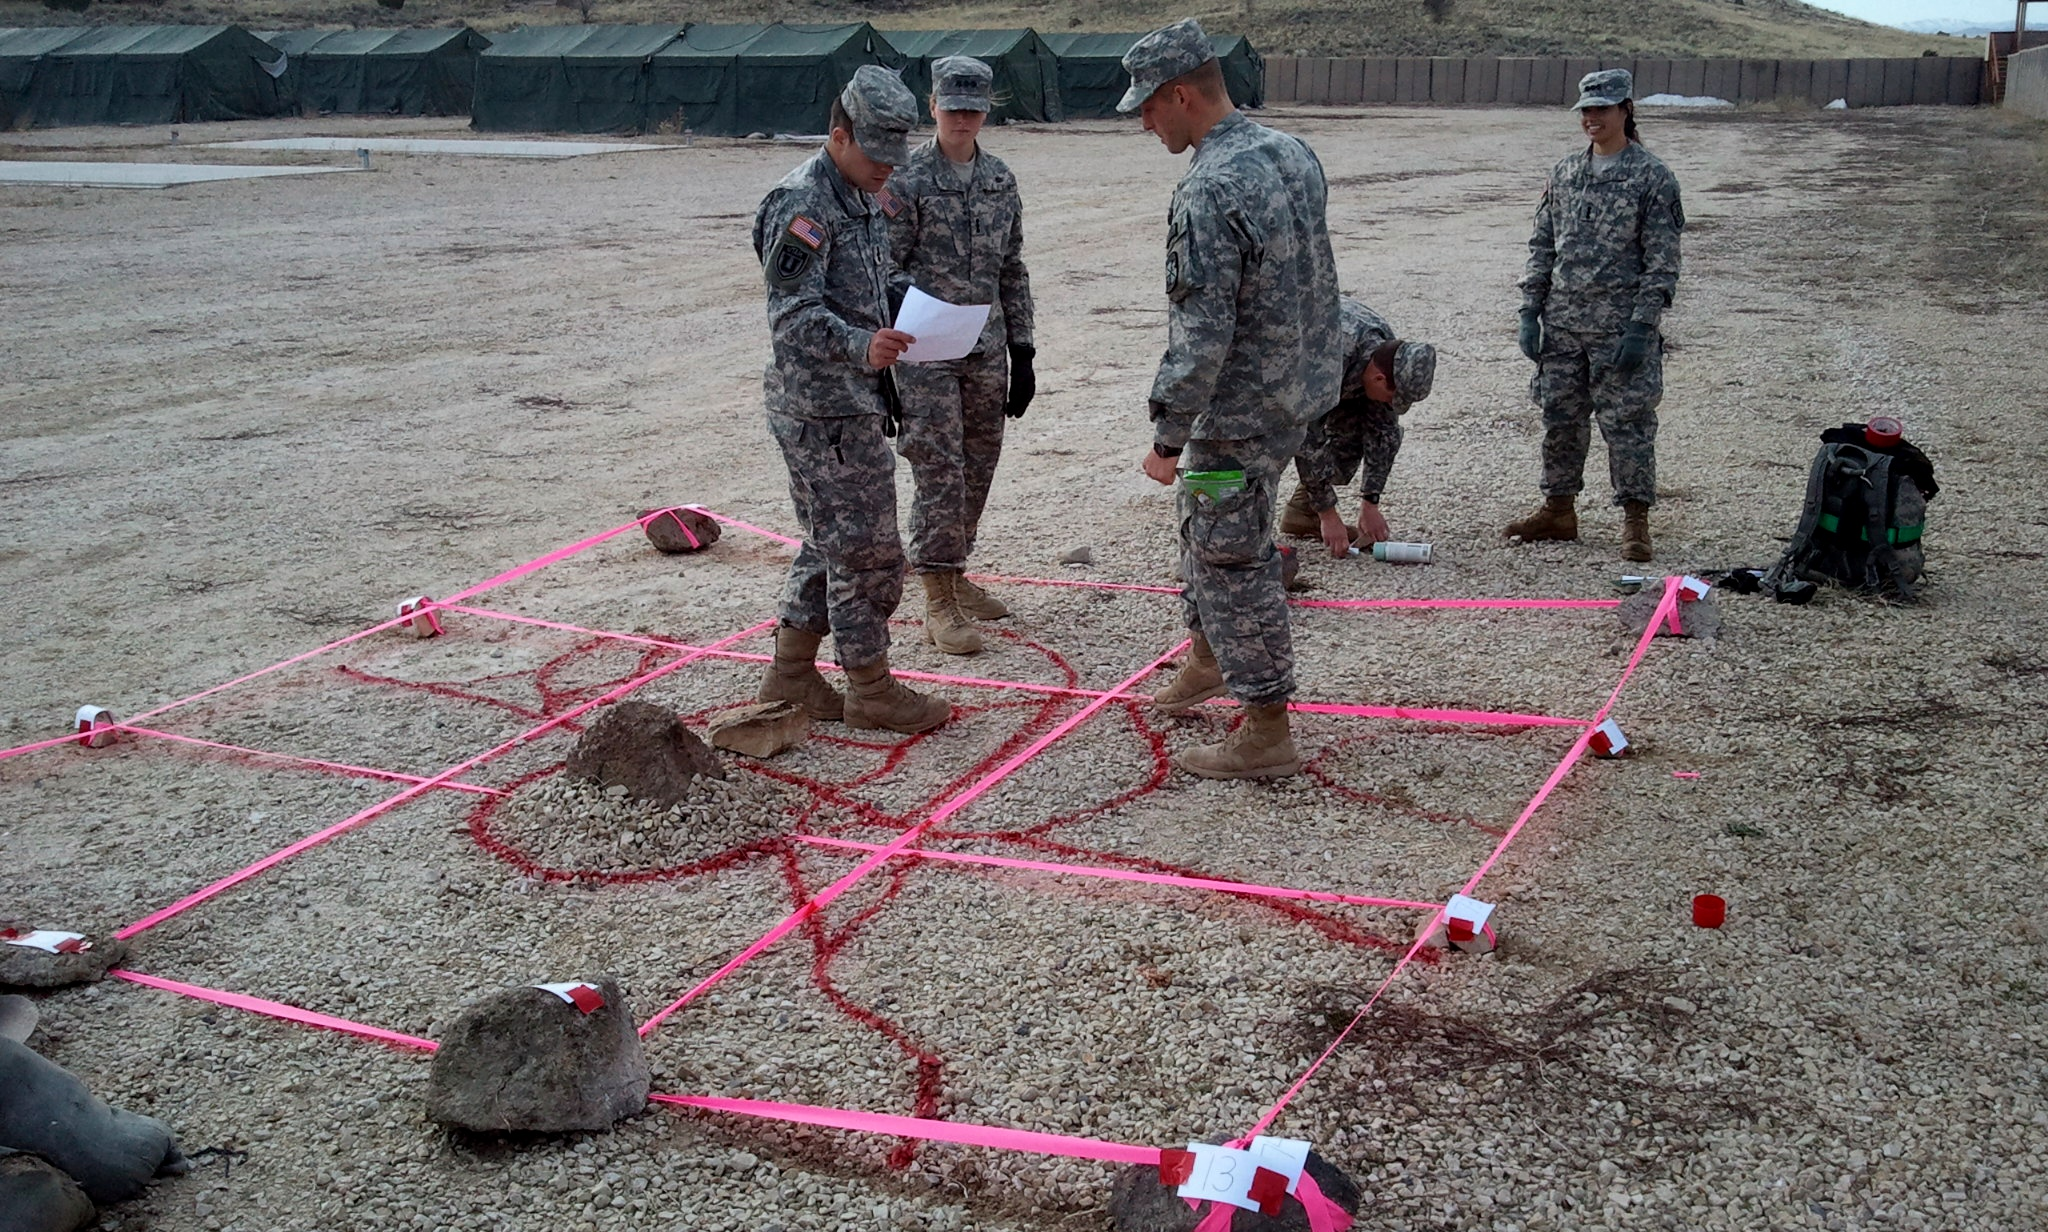 Room-scale developers should make more diorama-like games ... |Sand Table Kit Rotc Army